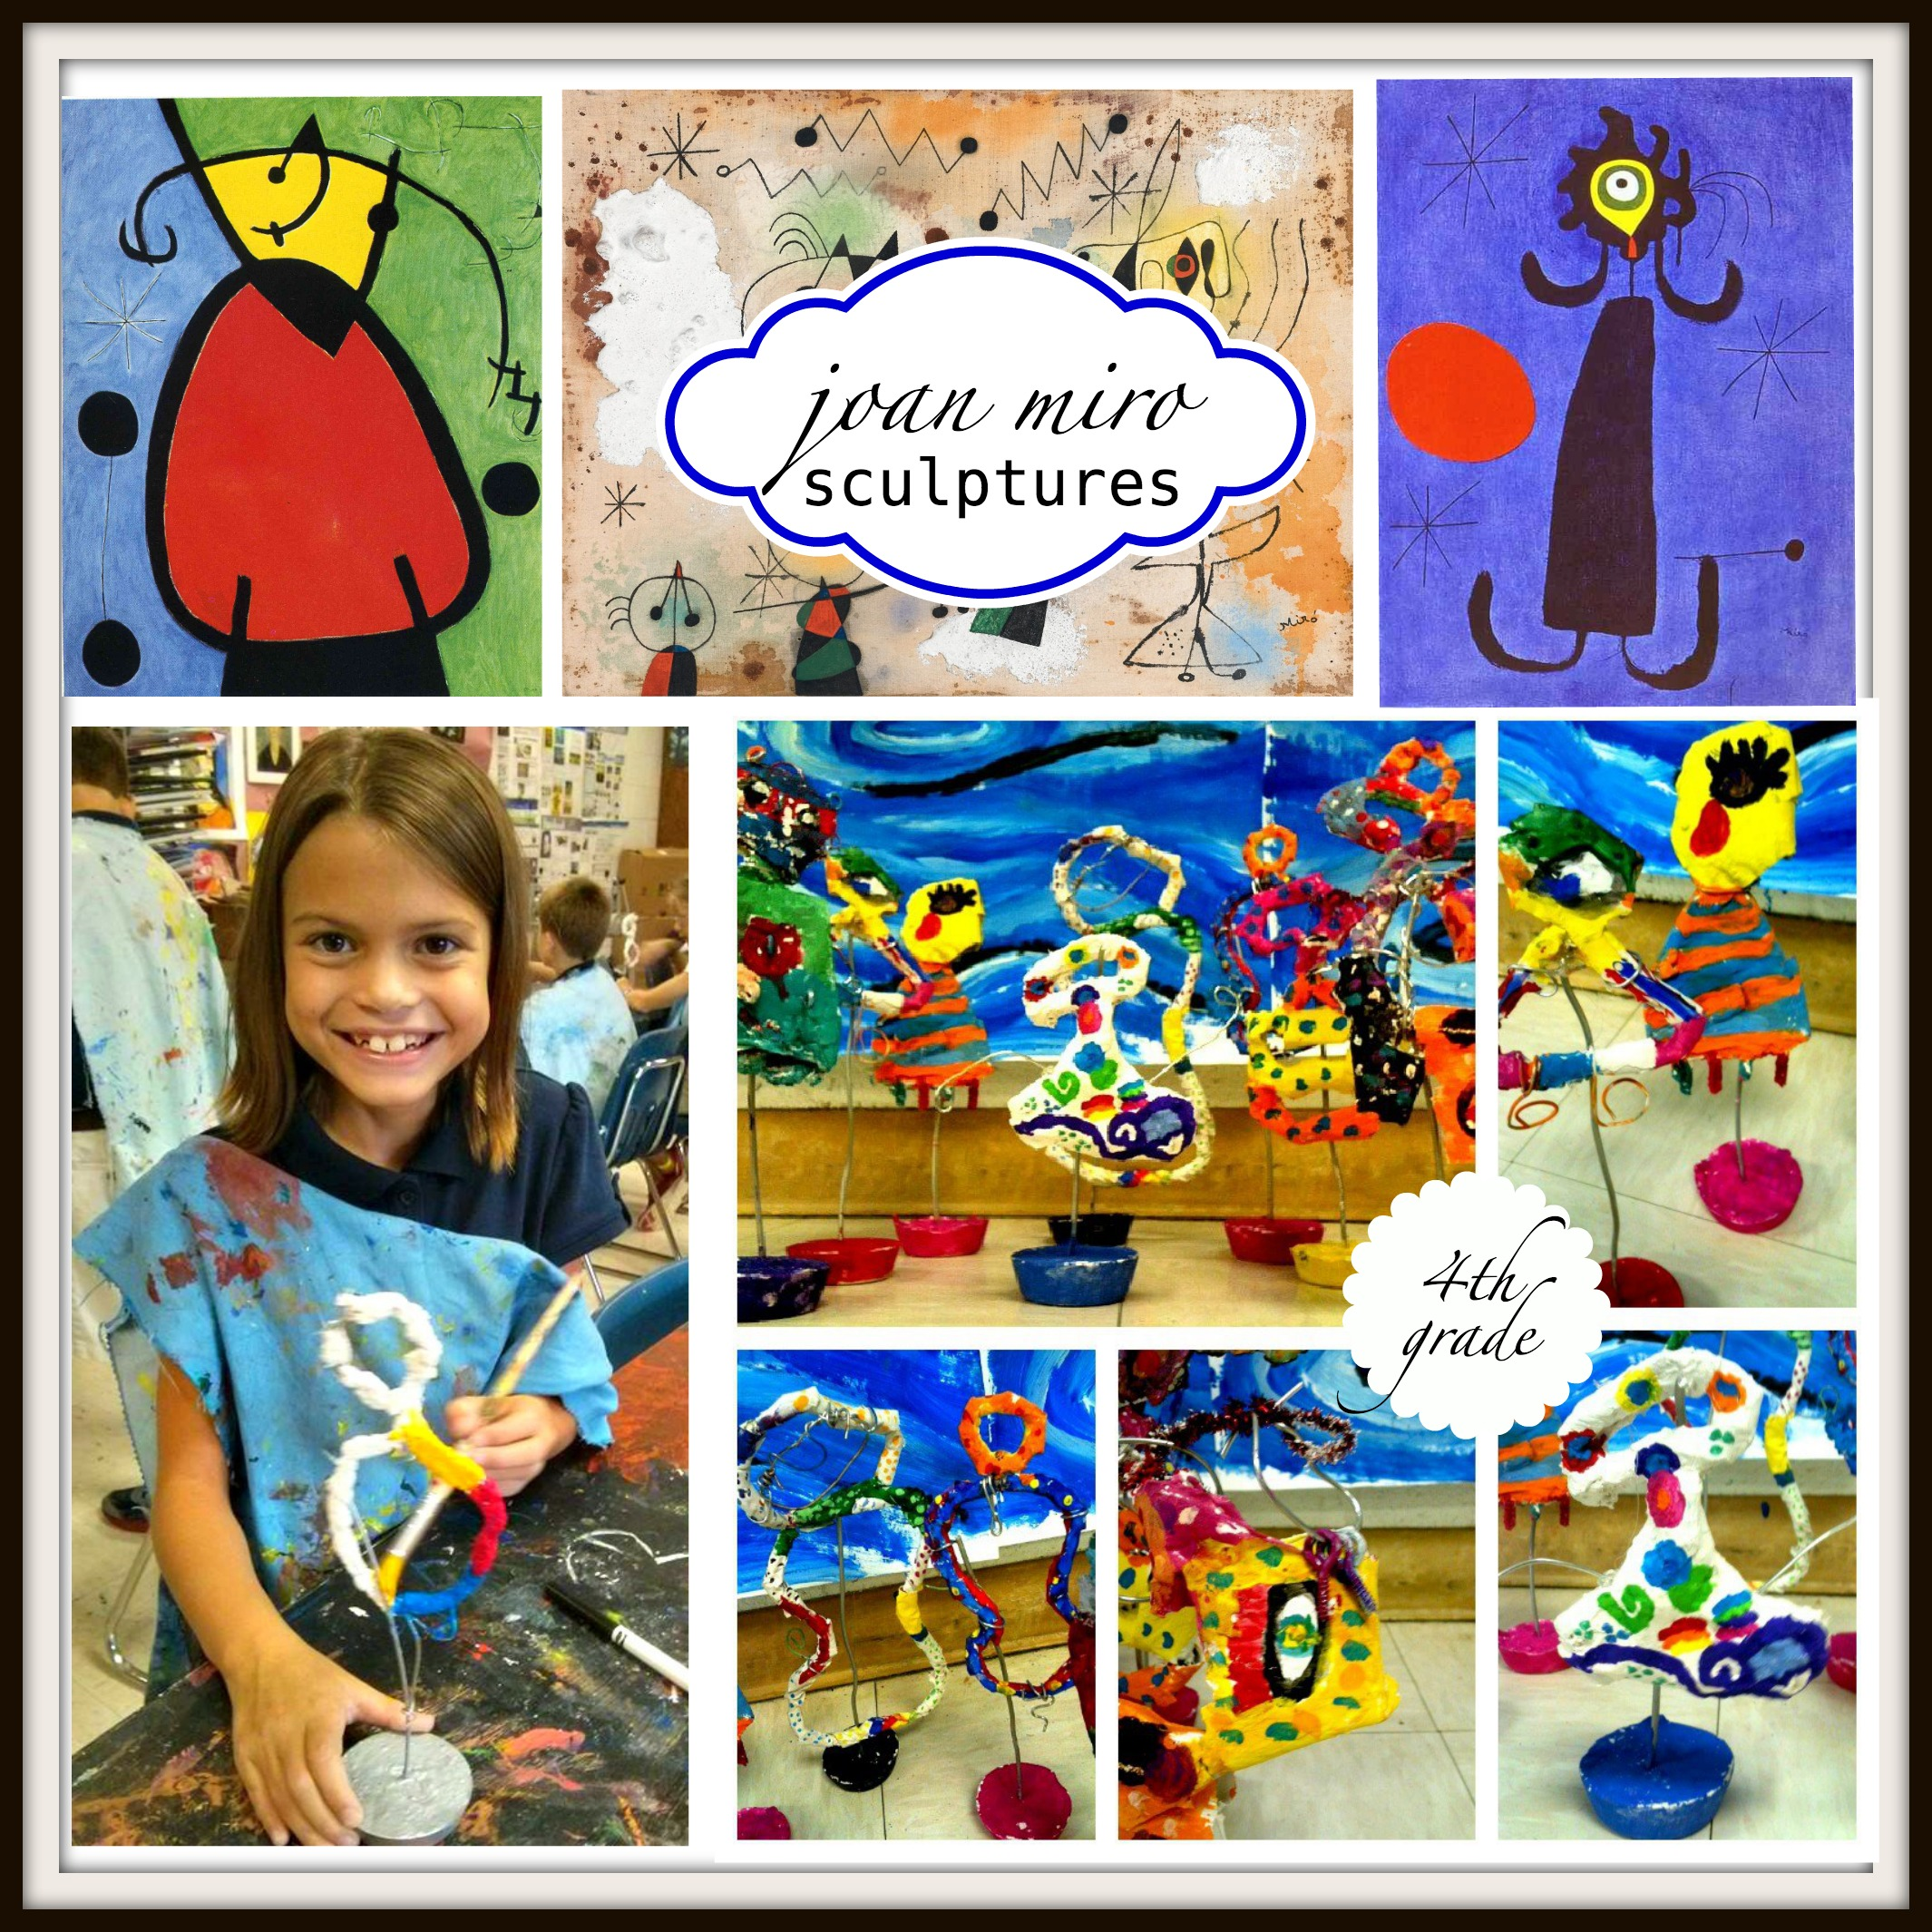 Joan Miro Sculptures